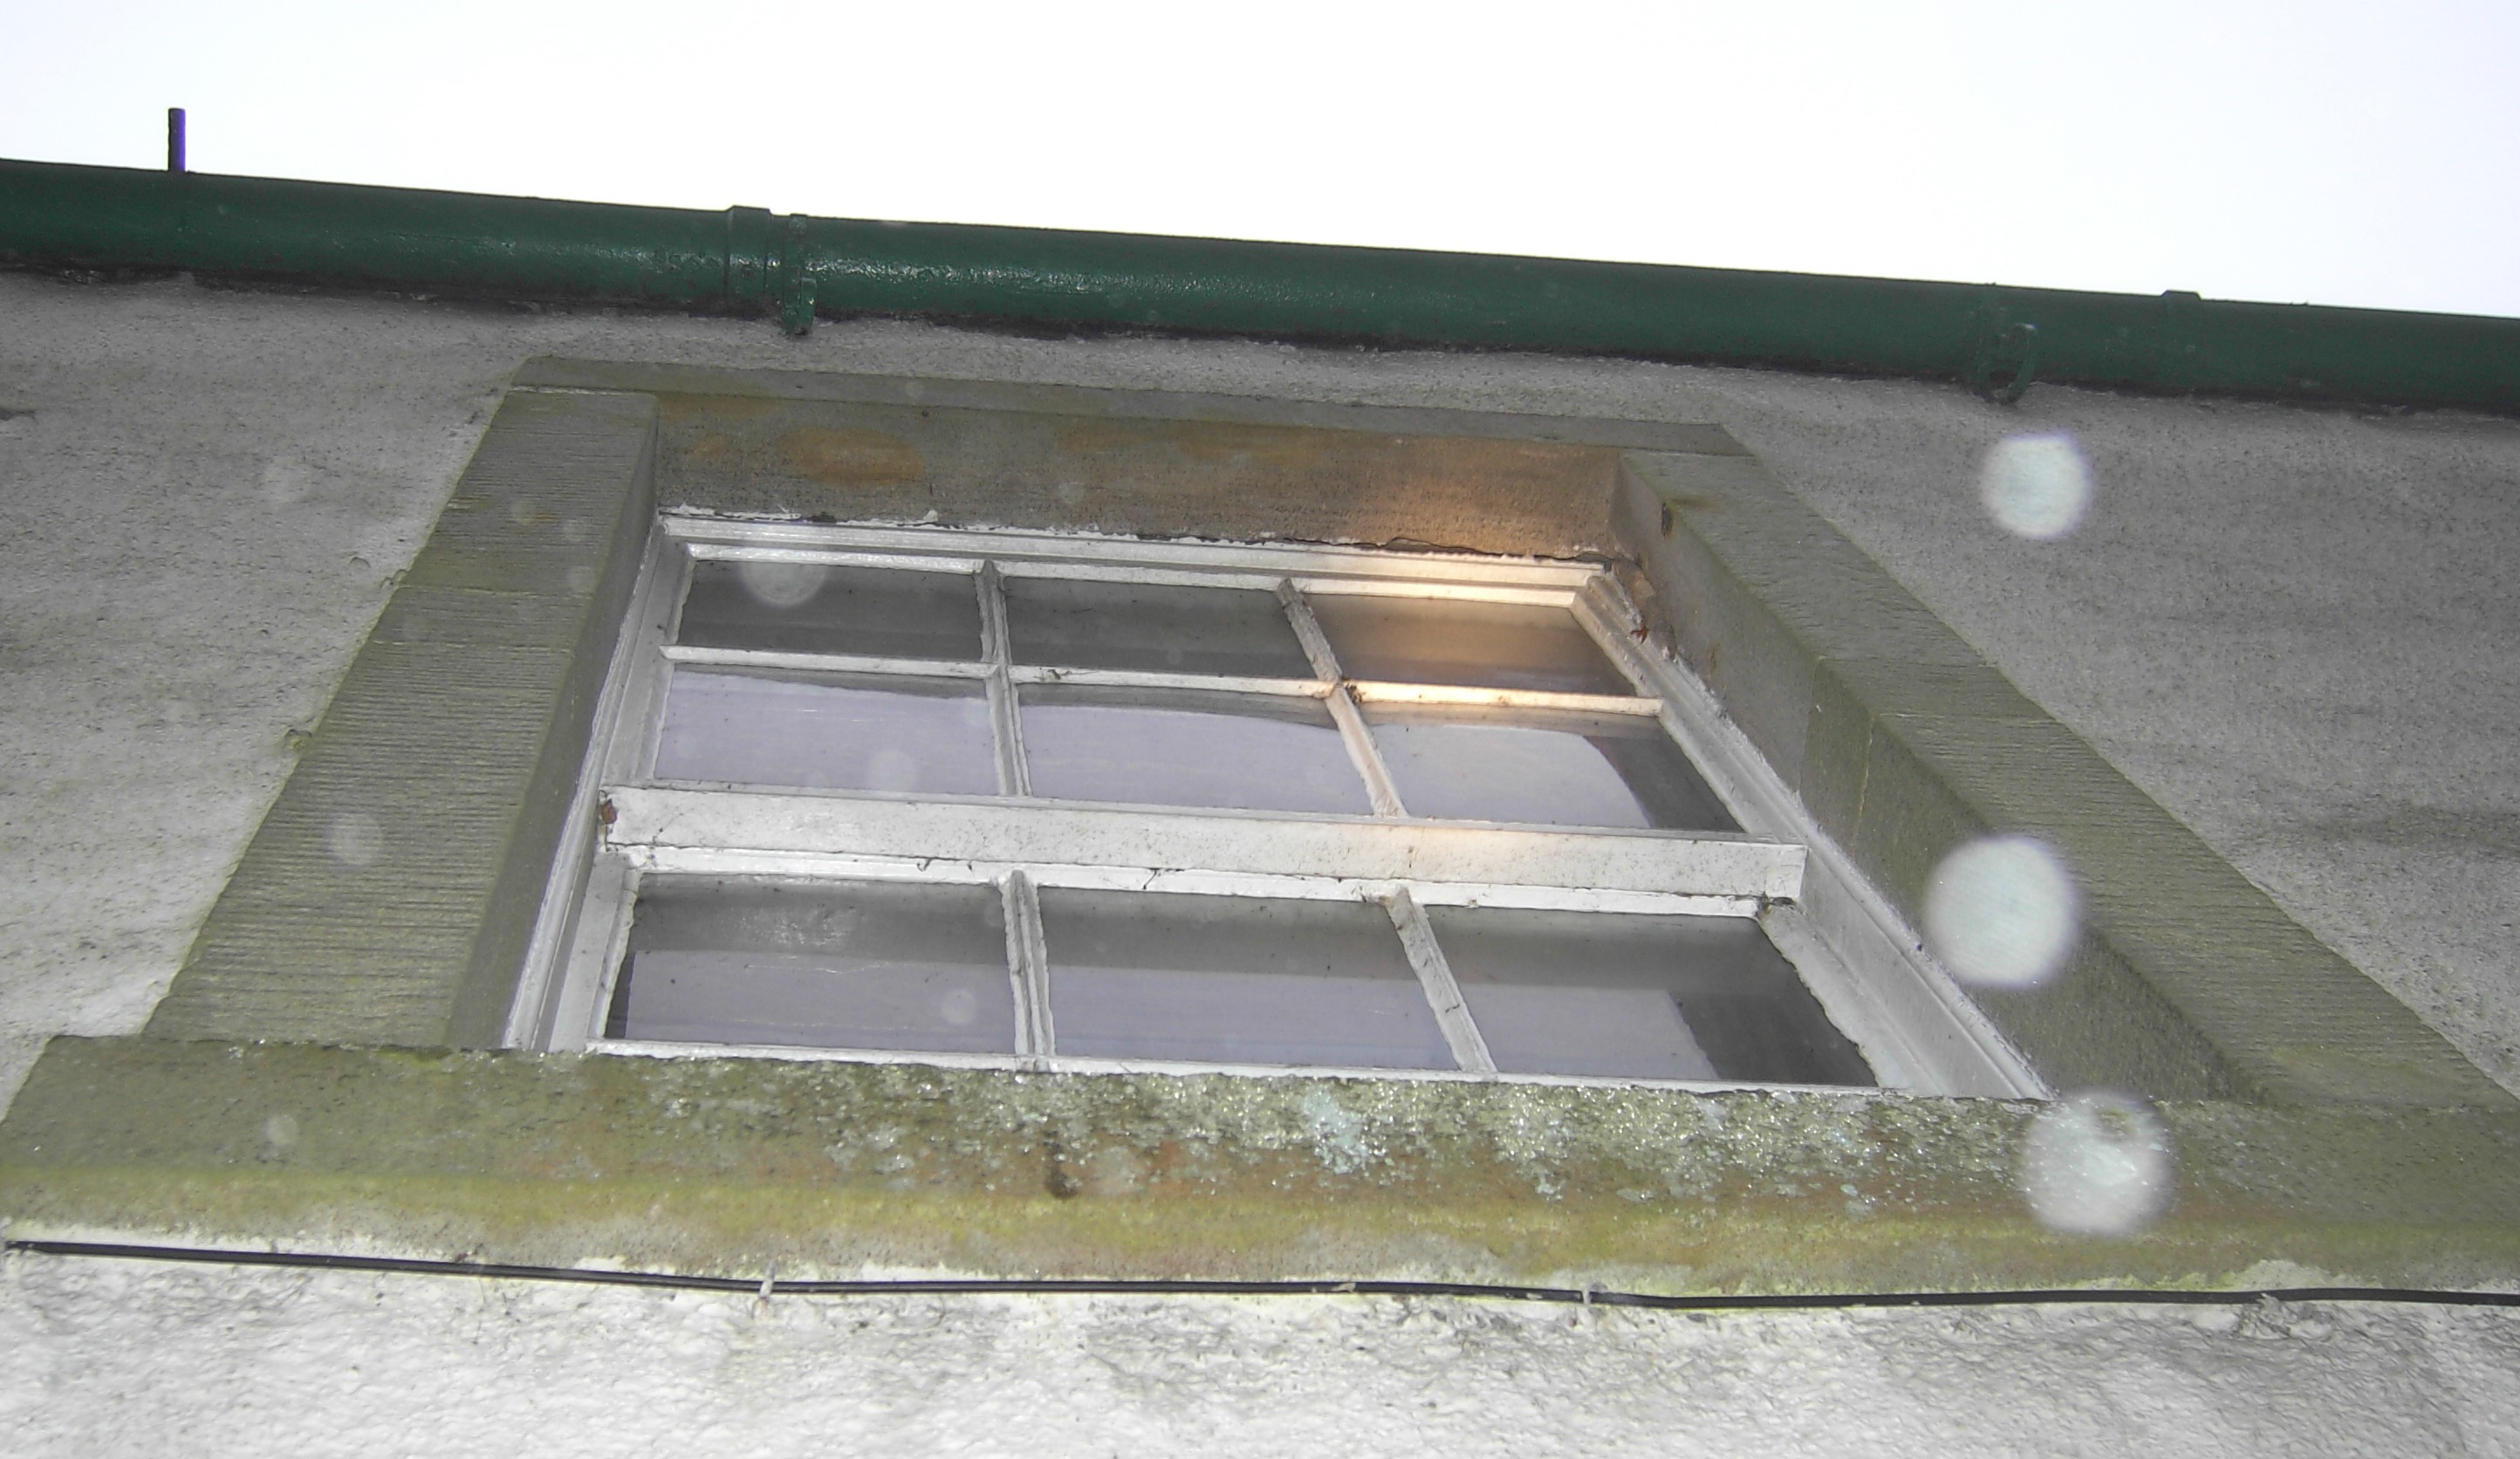 A sash window with sandstone lintel. The angle is from ground level looking up to a first floor window so gaps between the top lintel and the window casing can be seen